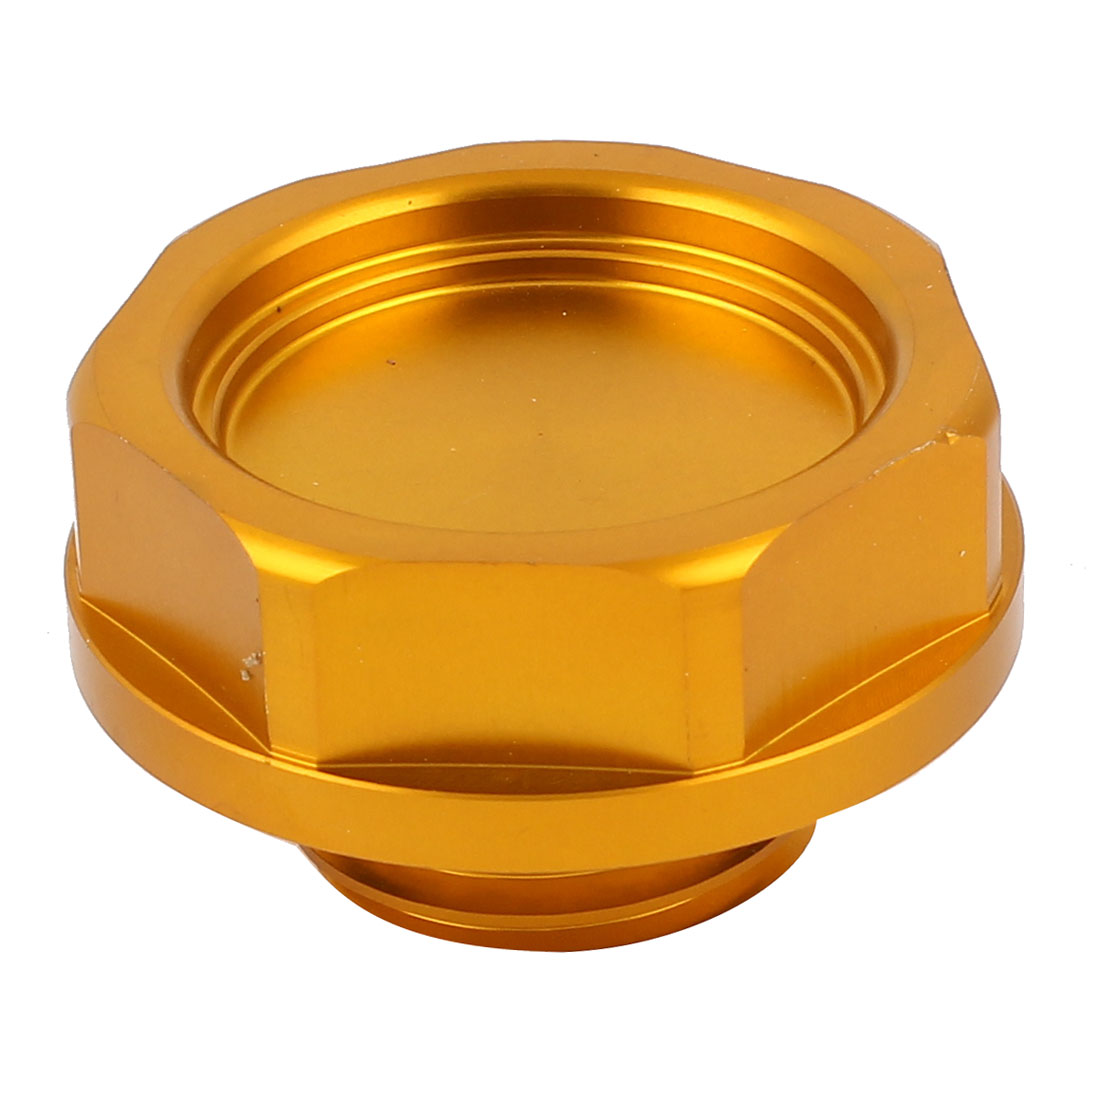 Vehicle Car Orange Metal Engine Oil Filler Fuel Cover Cap 56mm Dia for Honda